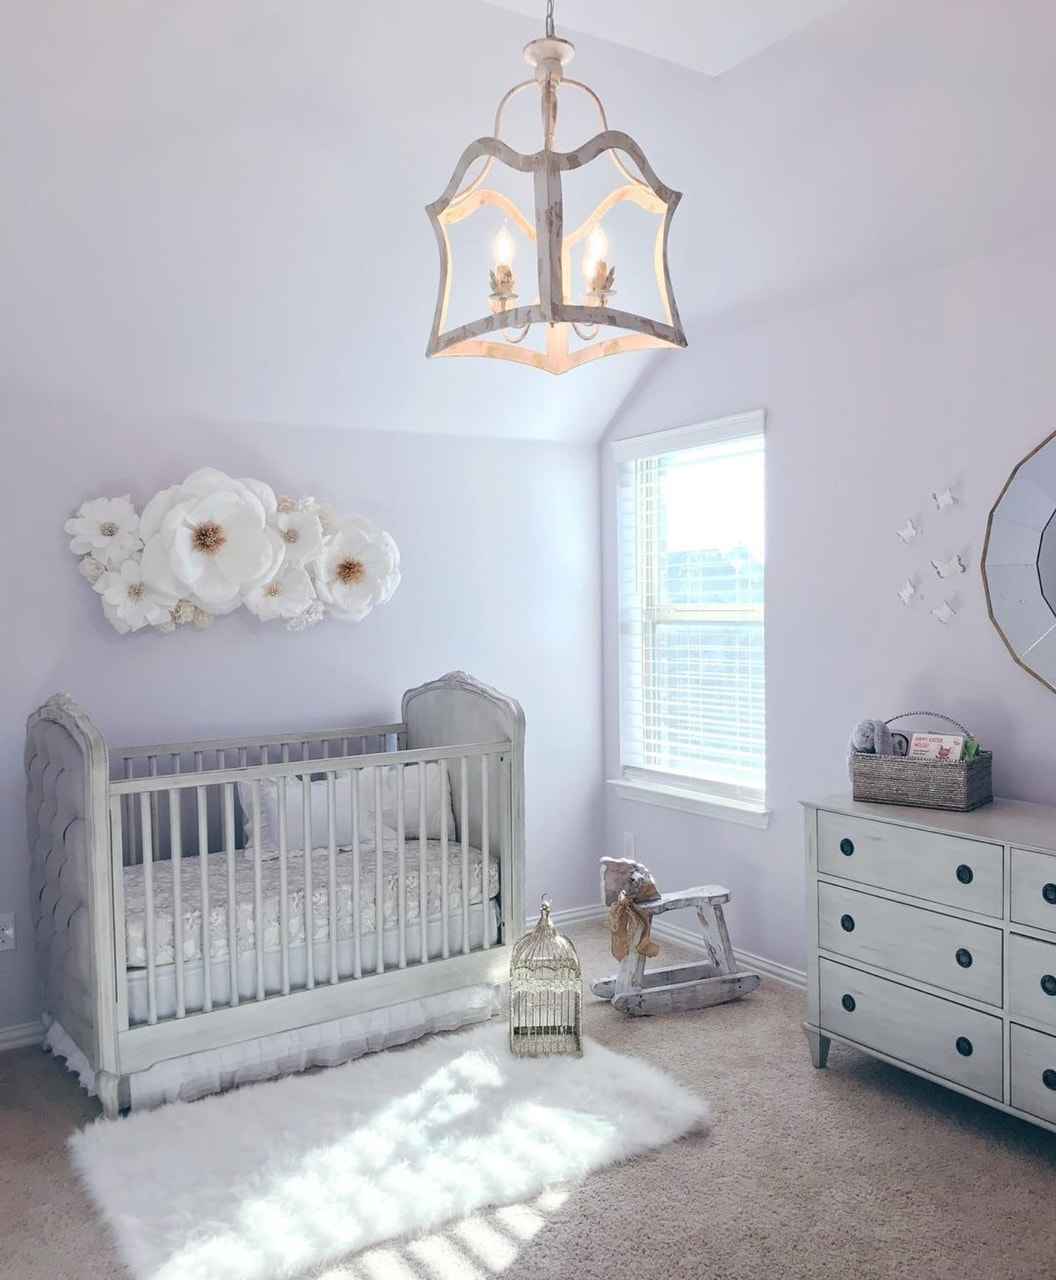 dcoration, baby room ideas, styl and room ideas